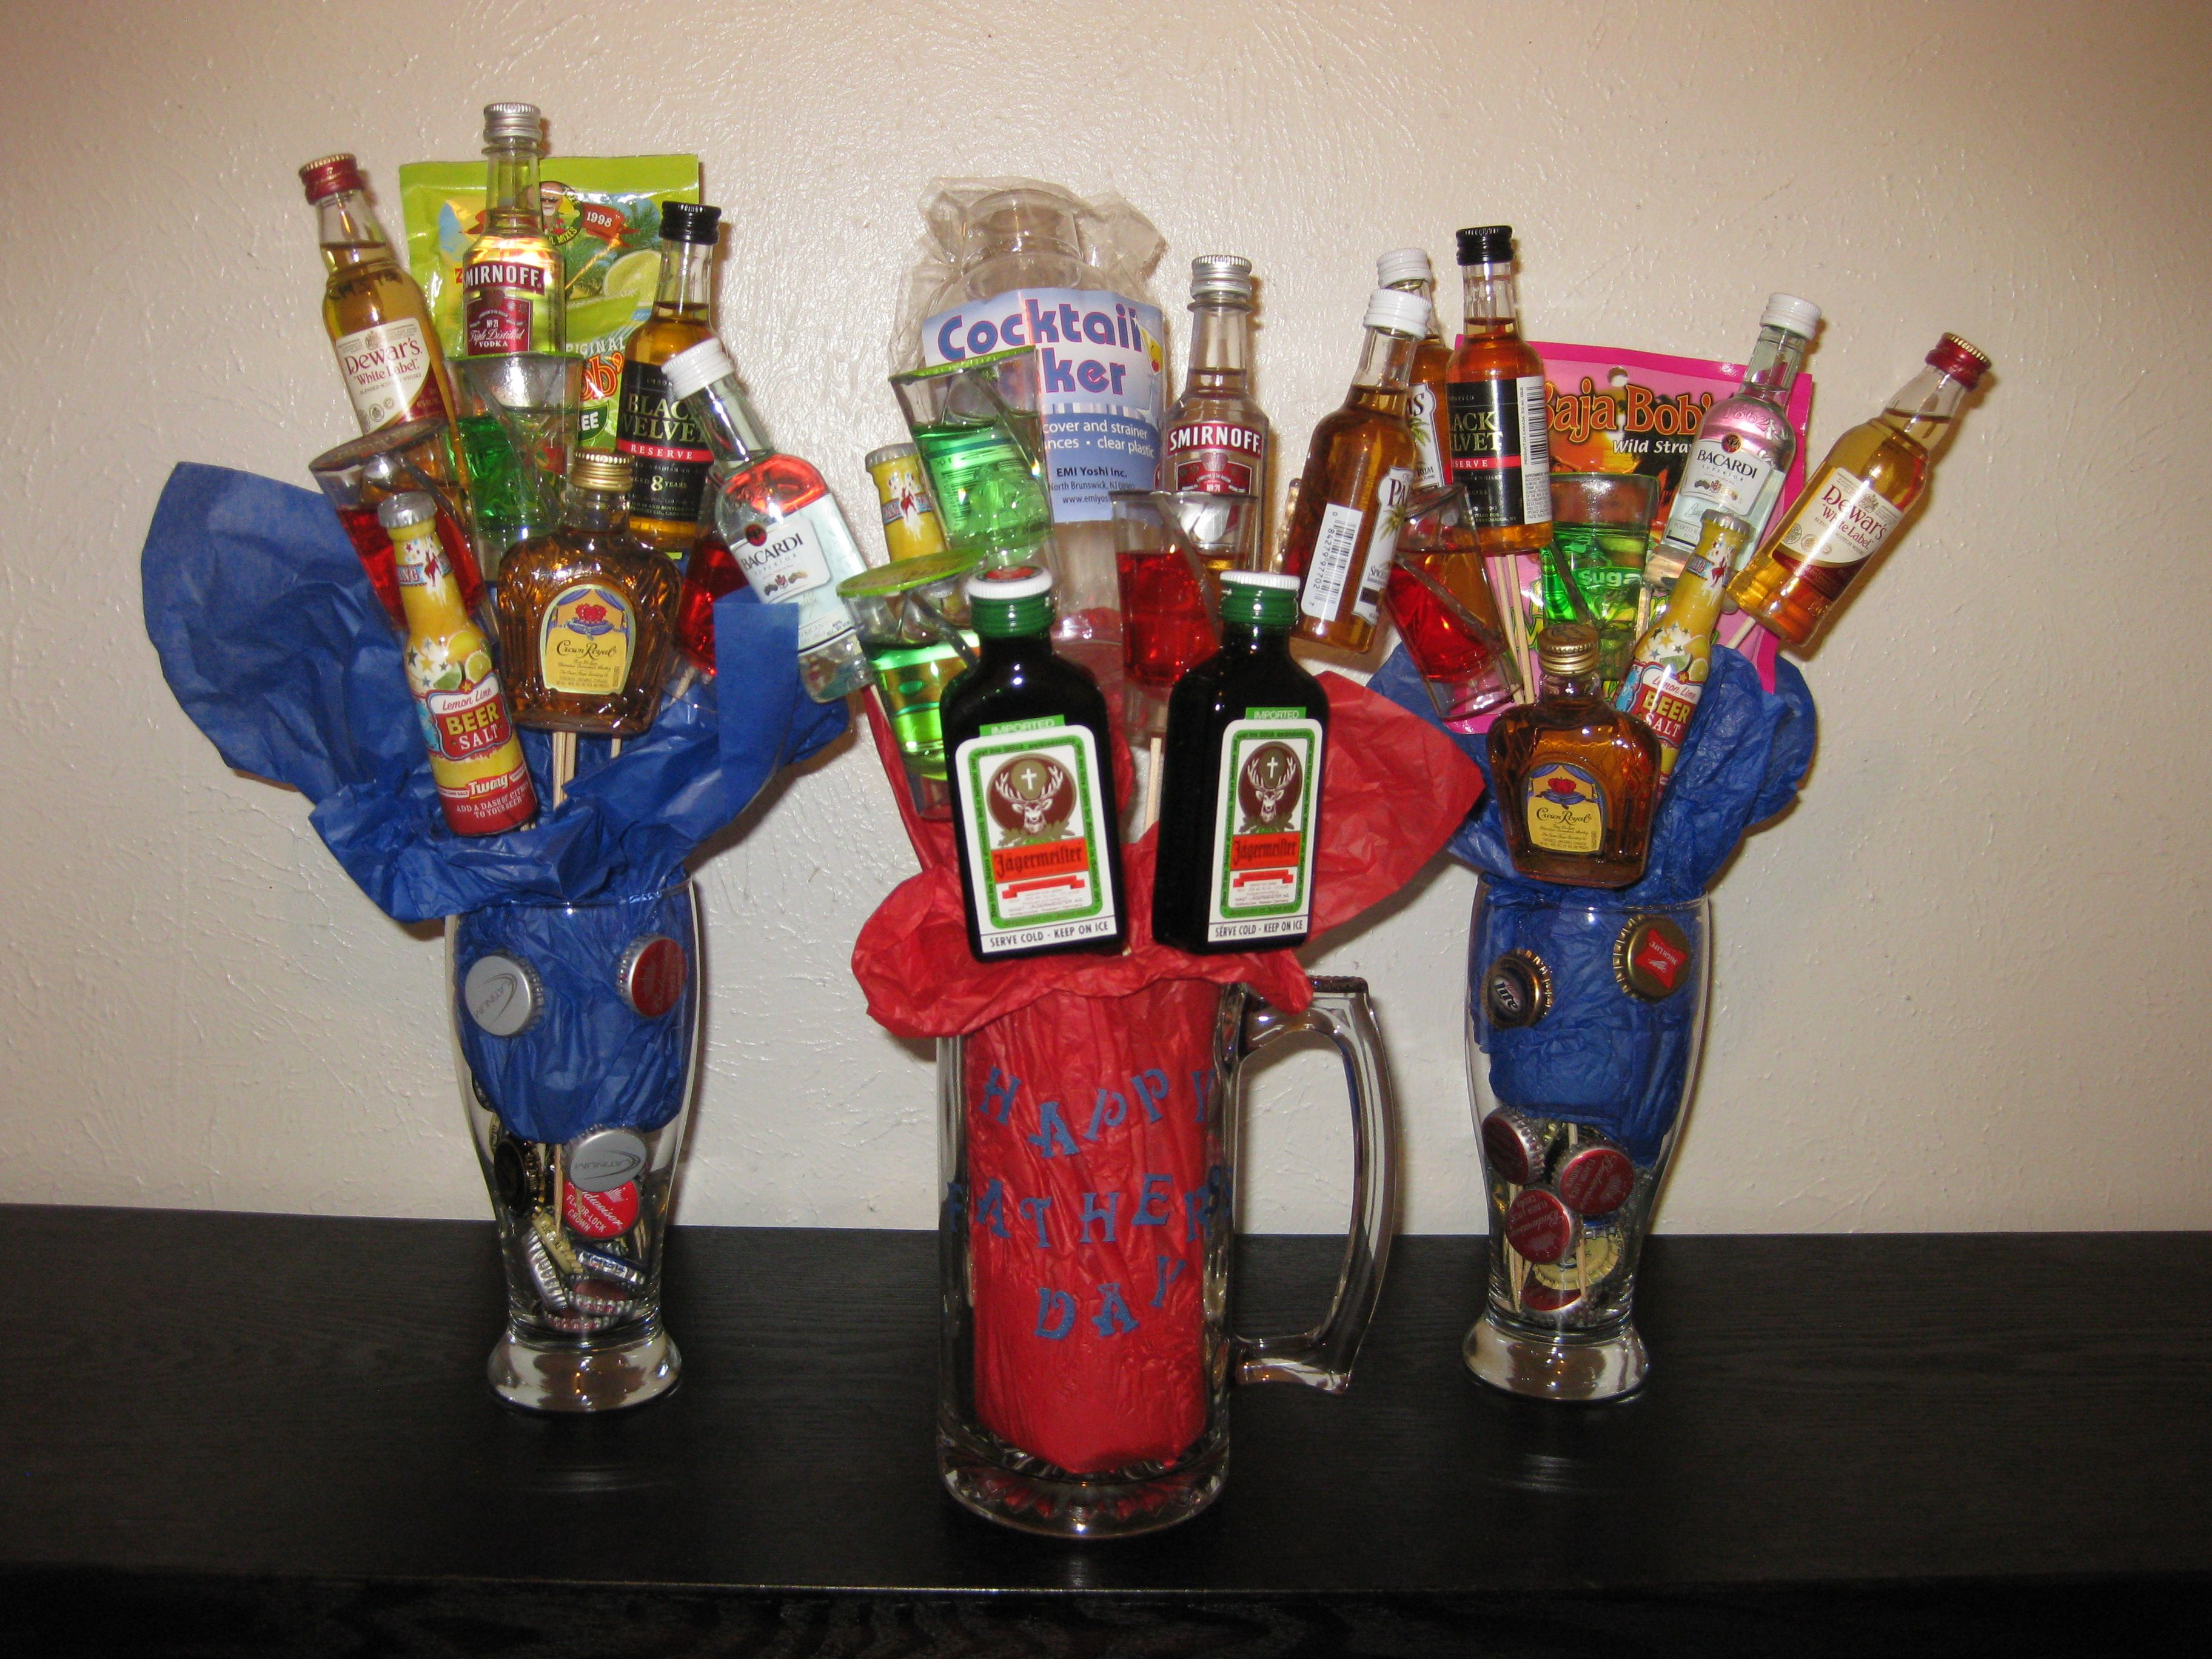 Pin By Shea Roberts On My Creations Liquor Bouquet Liquor Gift Baskets Liquor Gifts